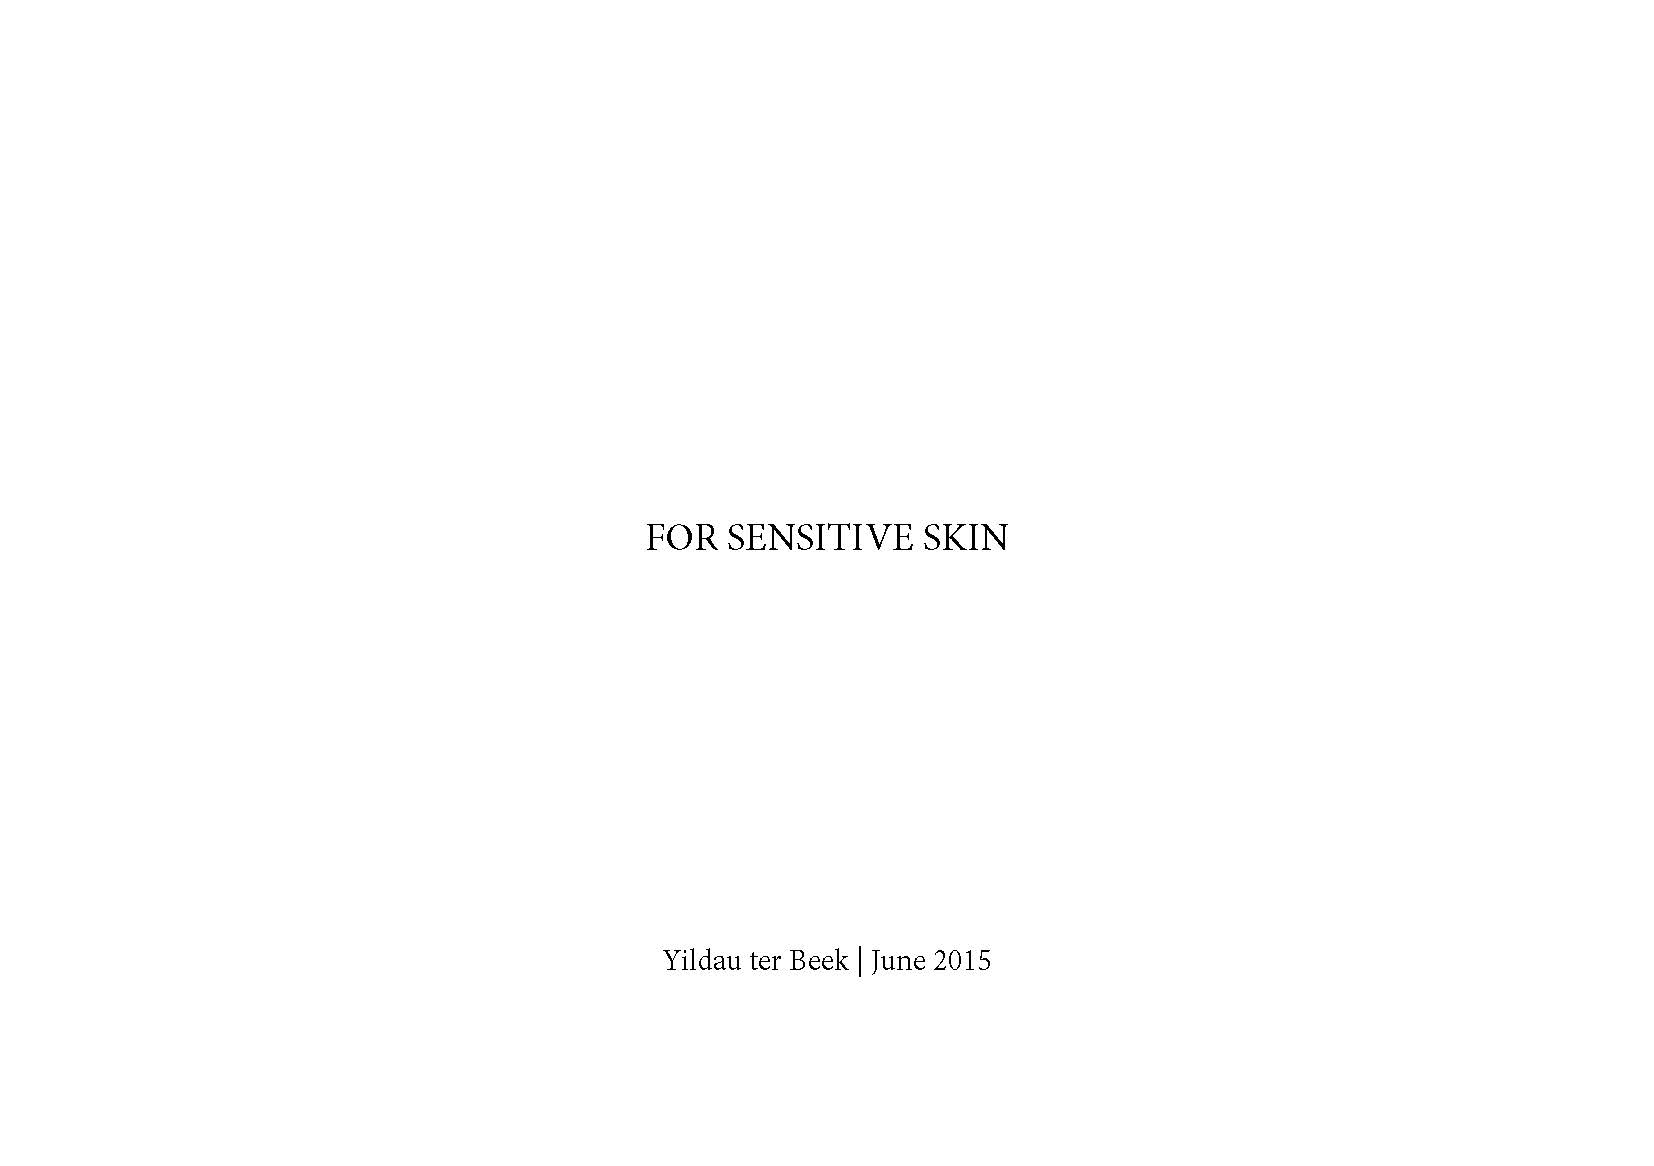 FOR SENSITIVE SKIN-website_Pagina_01.jpg